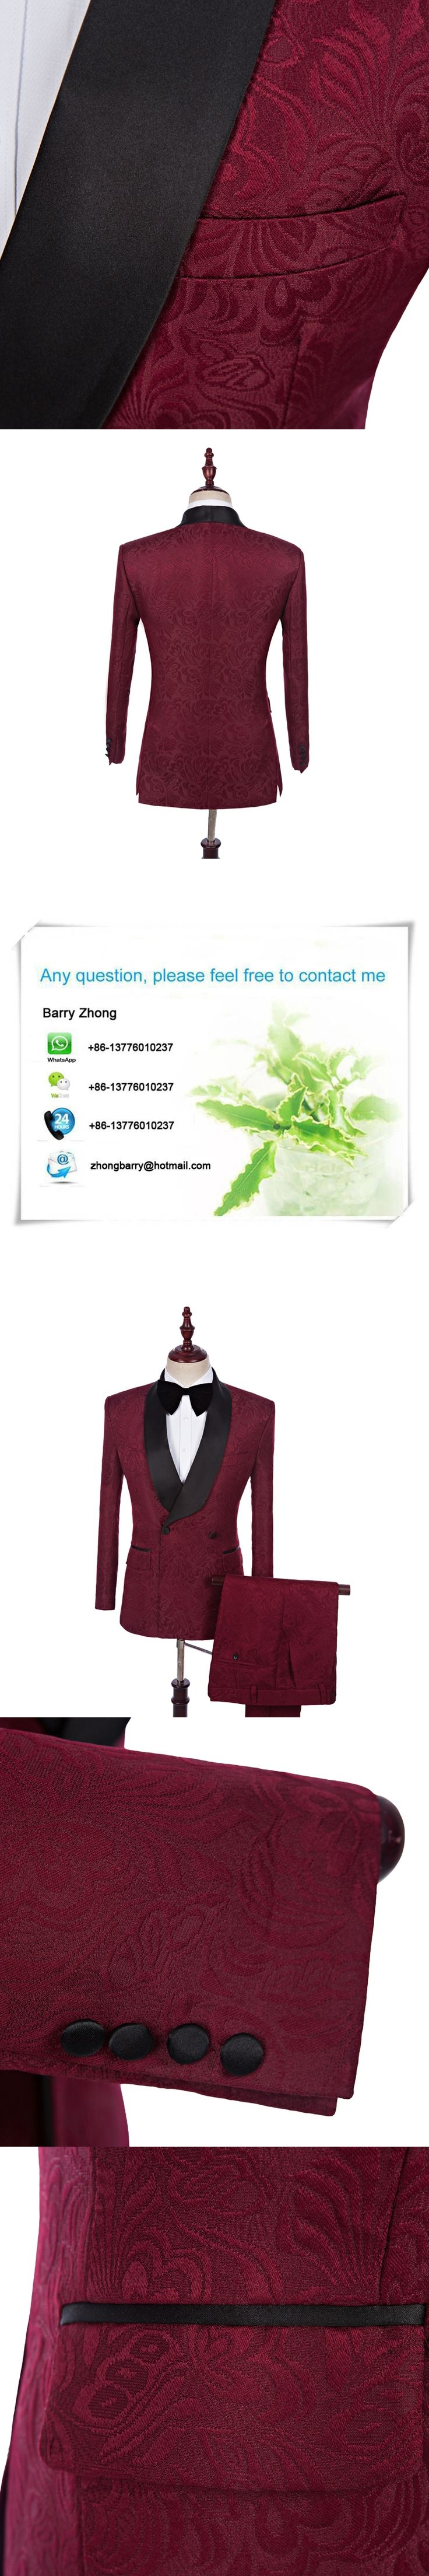 HB012 Tuxedos Jacket Wine Red Jacket Wedding Suits For Men Custom Made Maroon Prom Dress Men Suit (Coat+Pants) Double Breasted